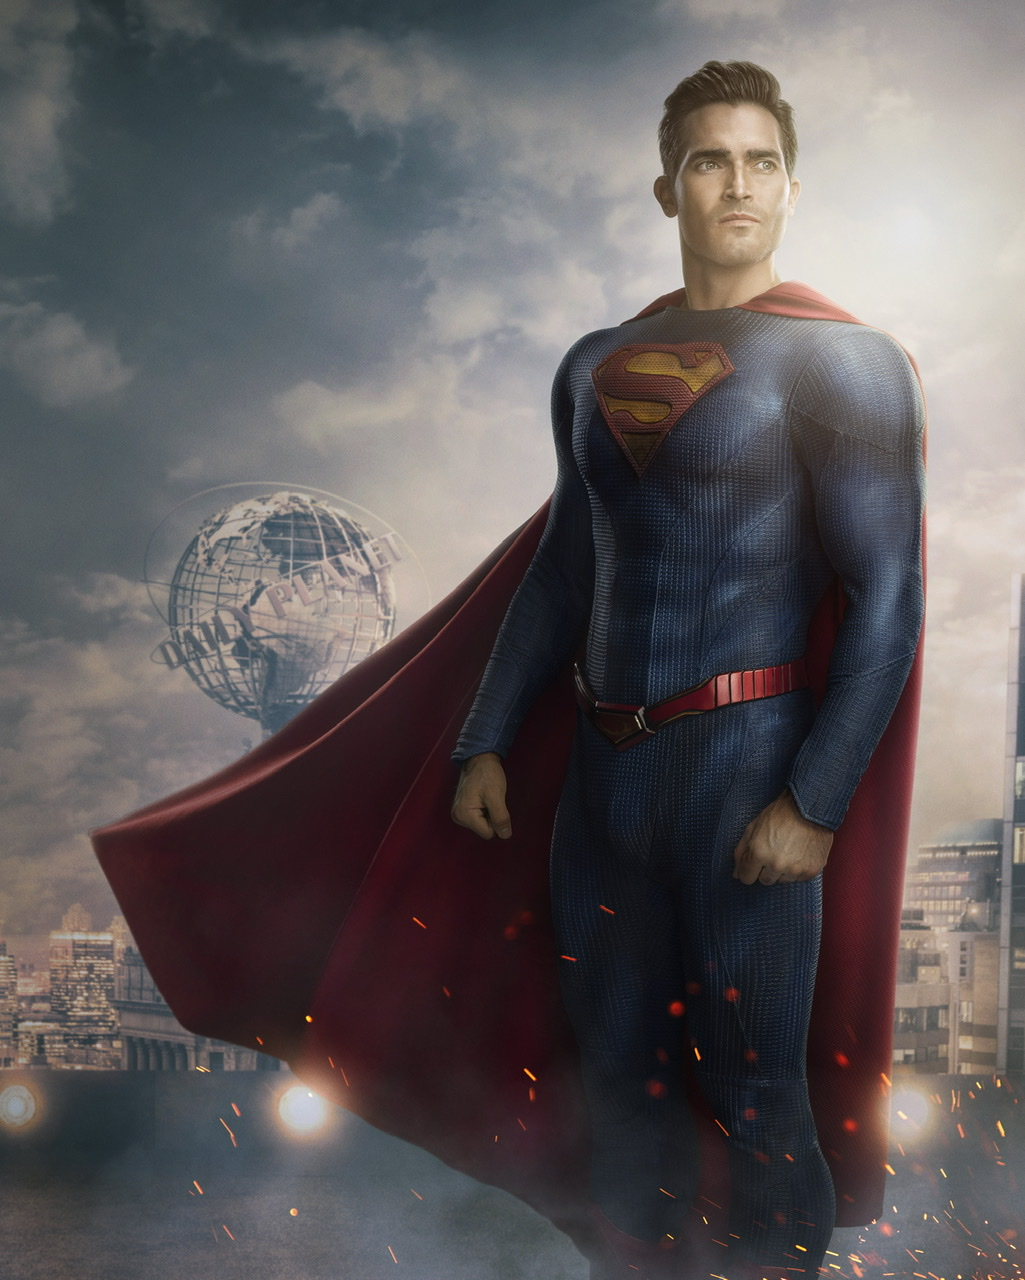 Tyler Hoechlin as Superman